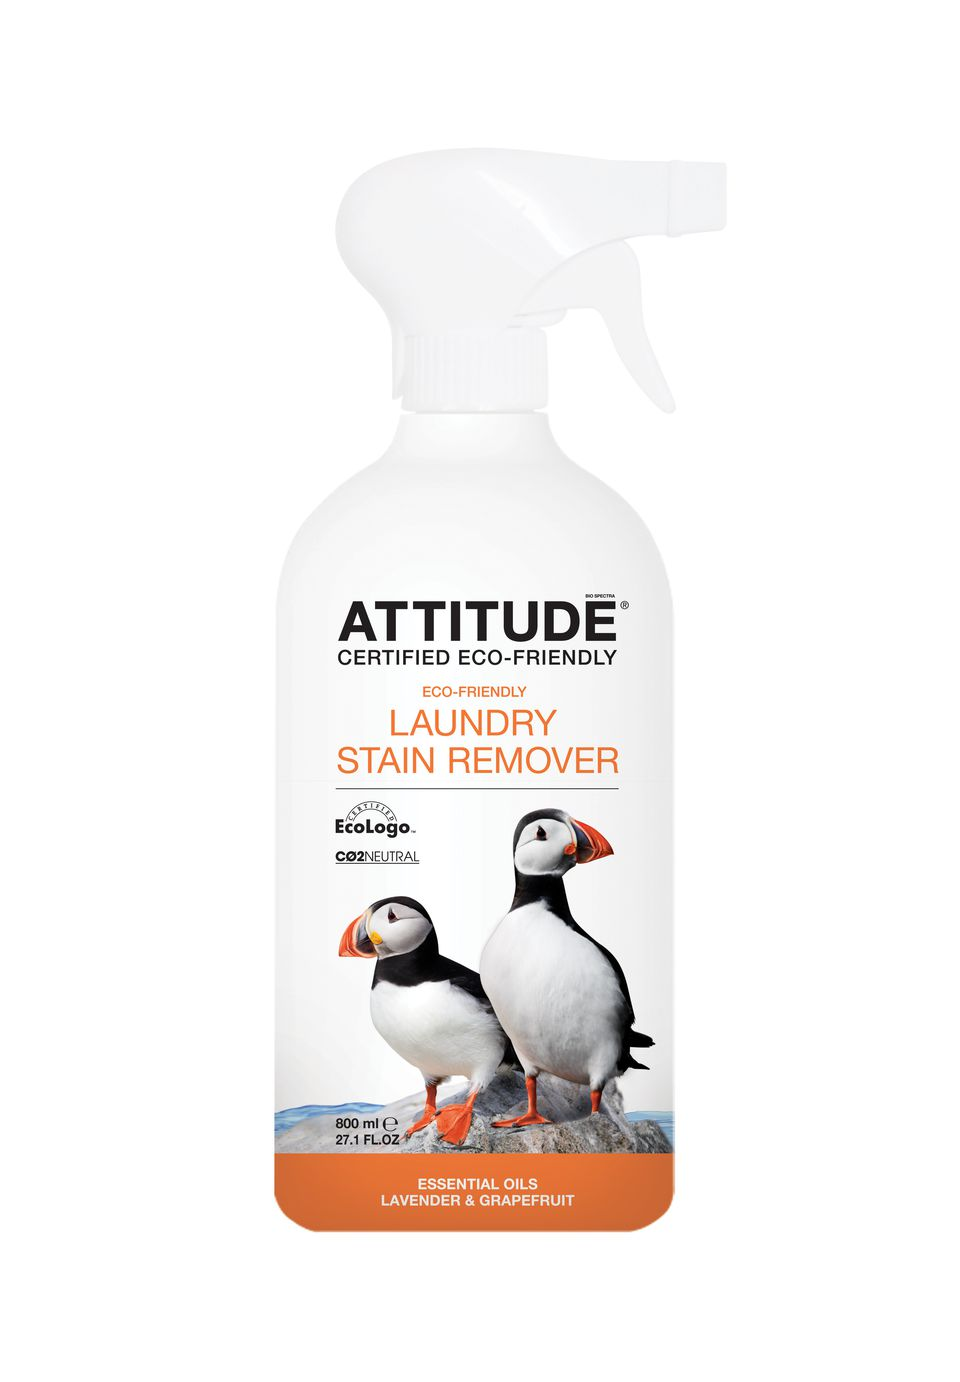 Attitude Eco-Friendly Laundry Stain Remover